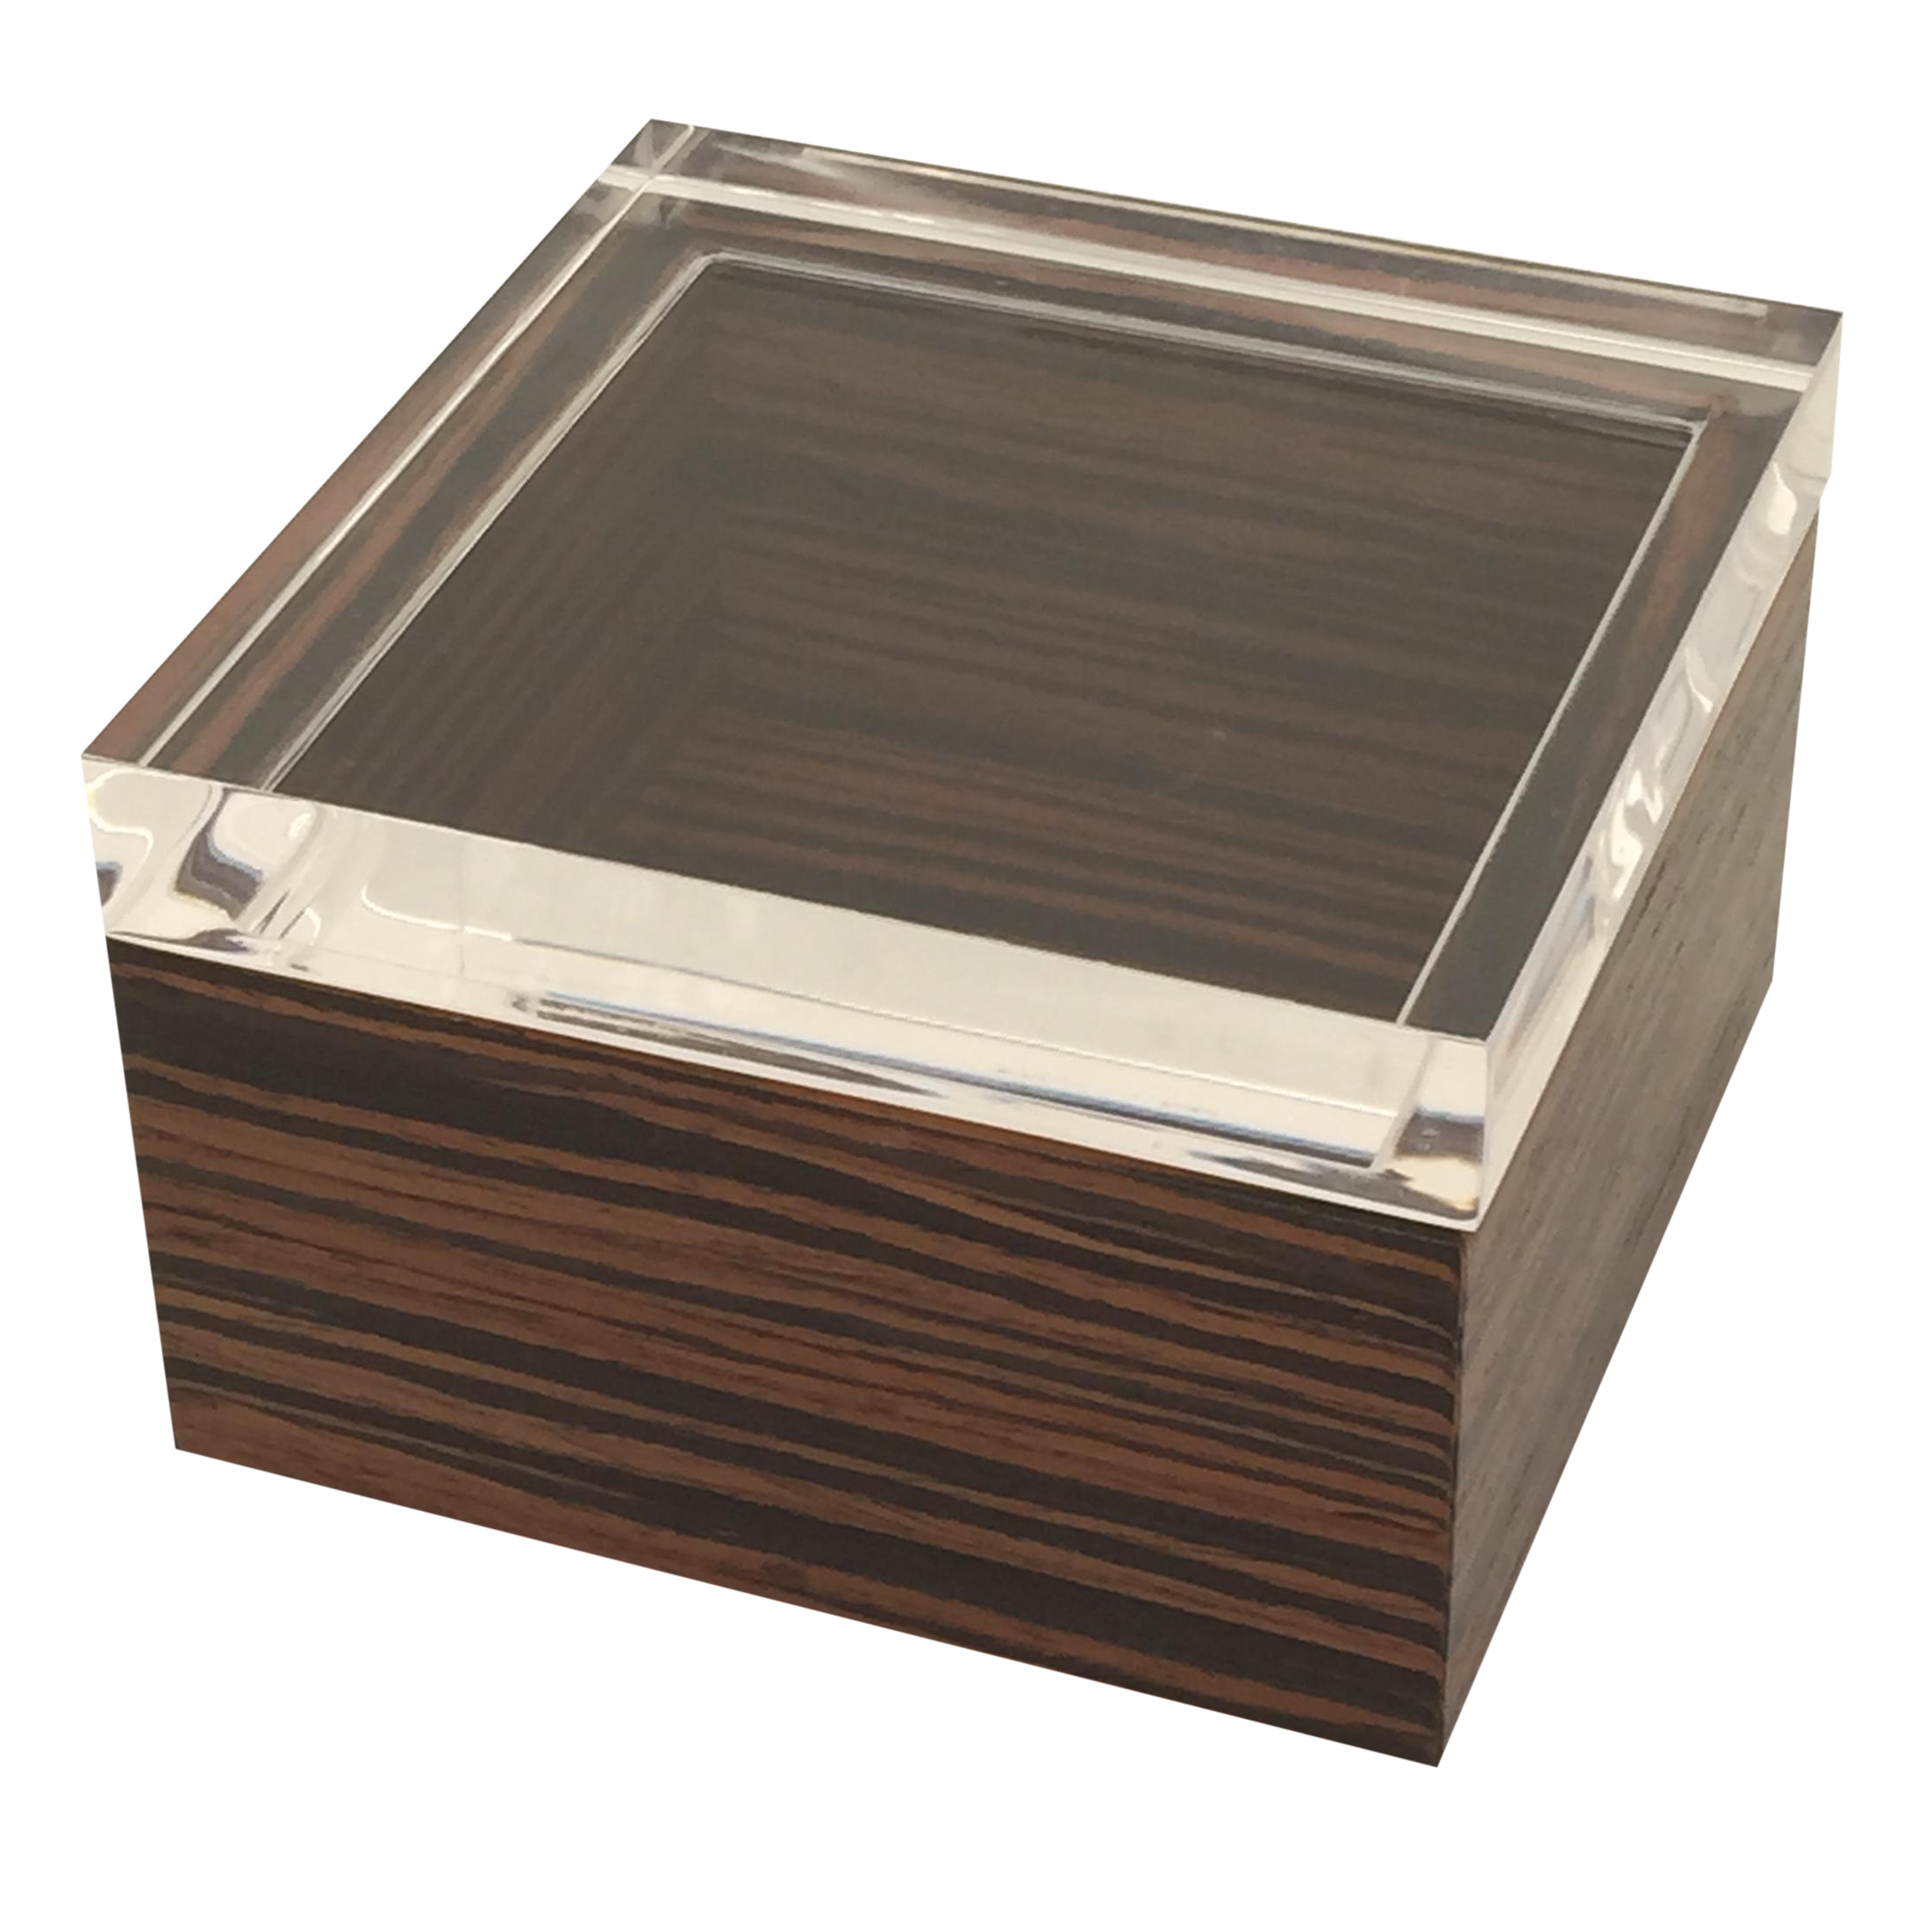 Macassar Ebony and Lucite Jewelry Box Chairish : be85e826 81bc 4155 a5b2 ca8902af03e6 from www.chairish.com size 2202 x 2172 png 1968kB